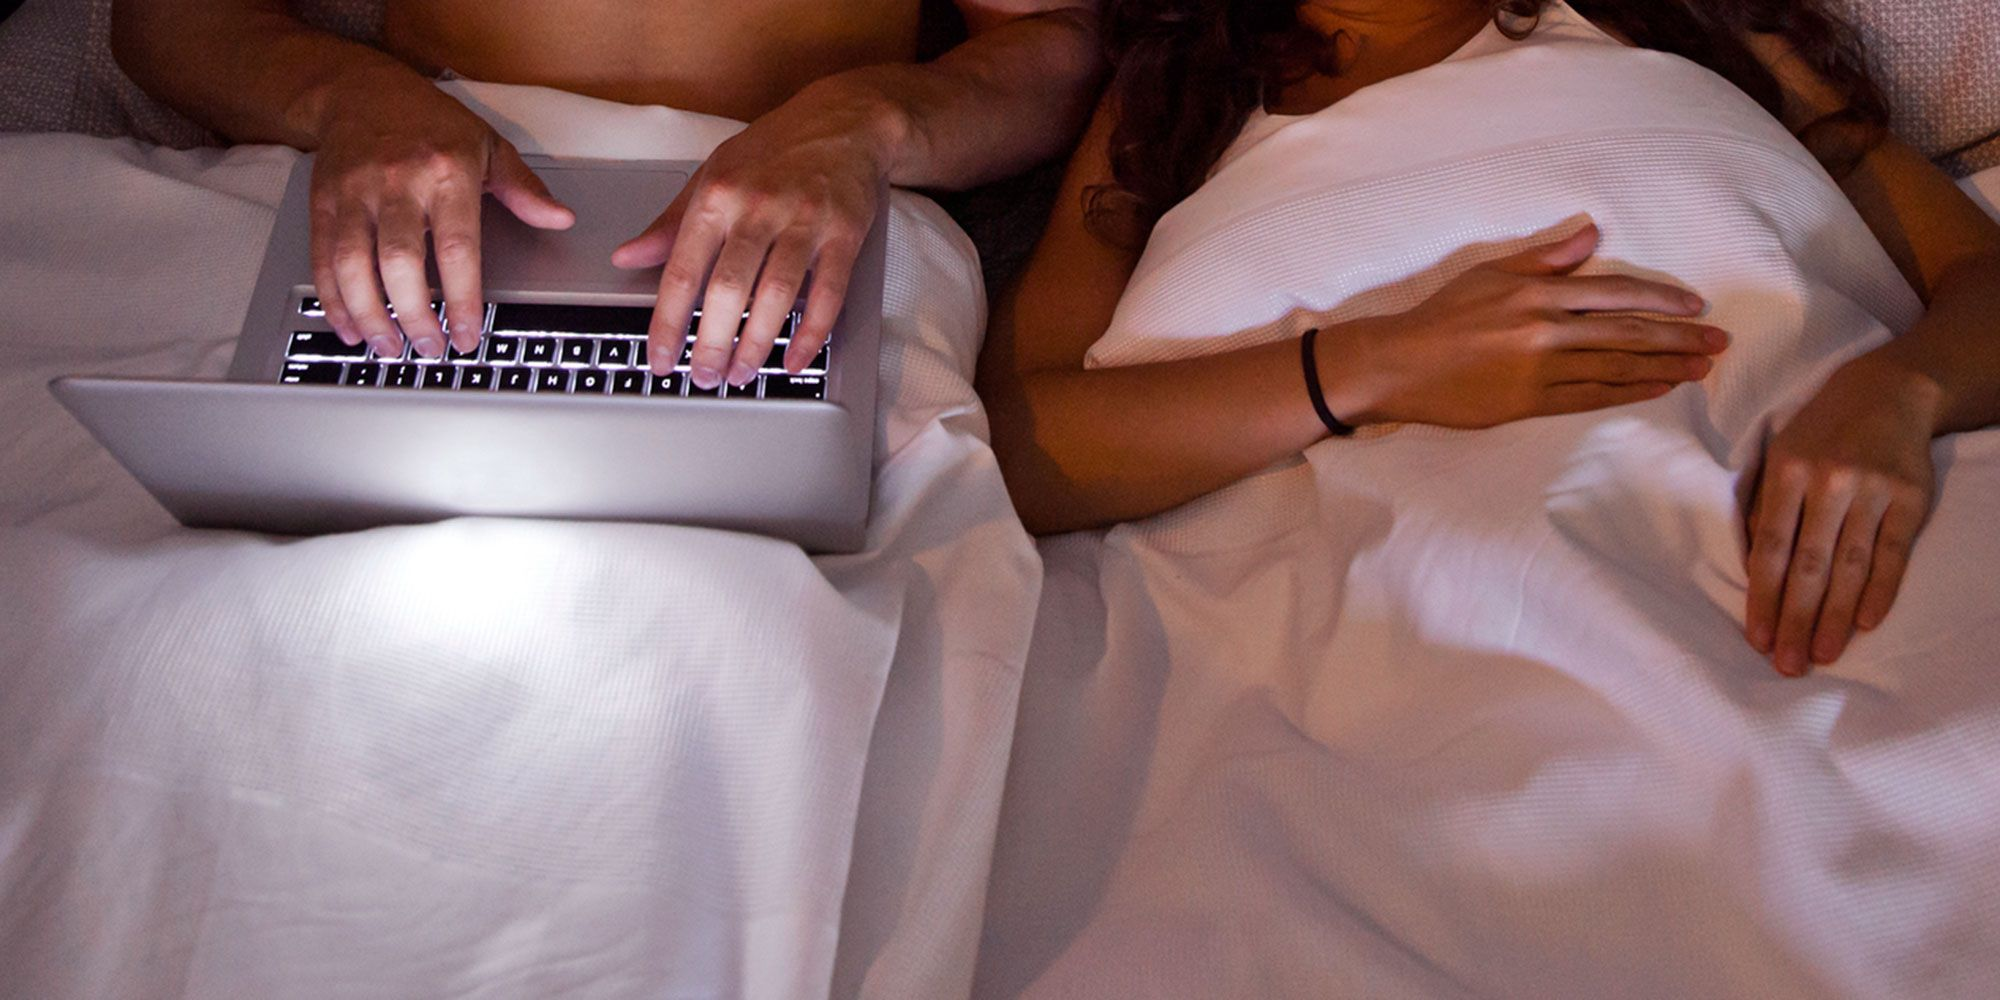 Couple using a laptop in bed together